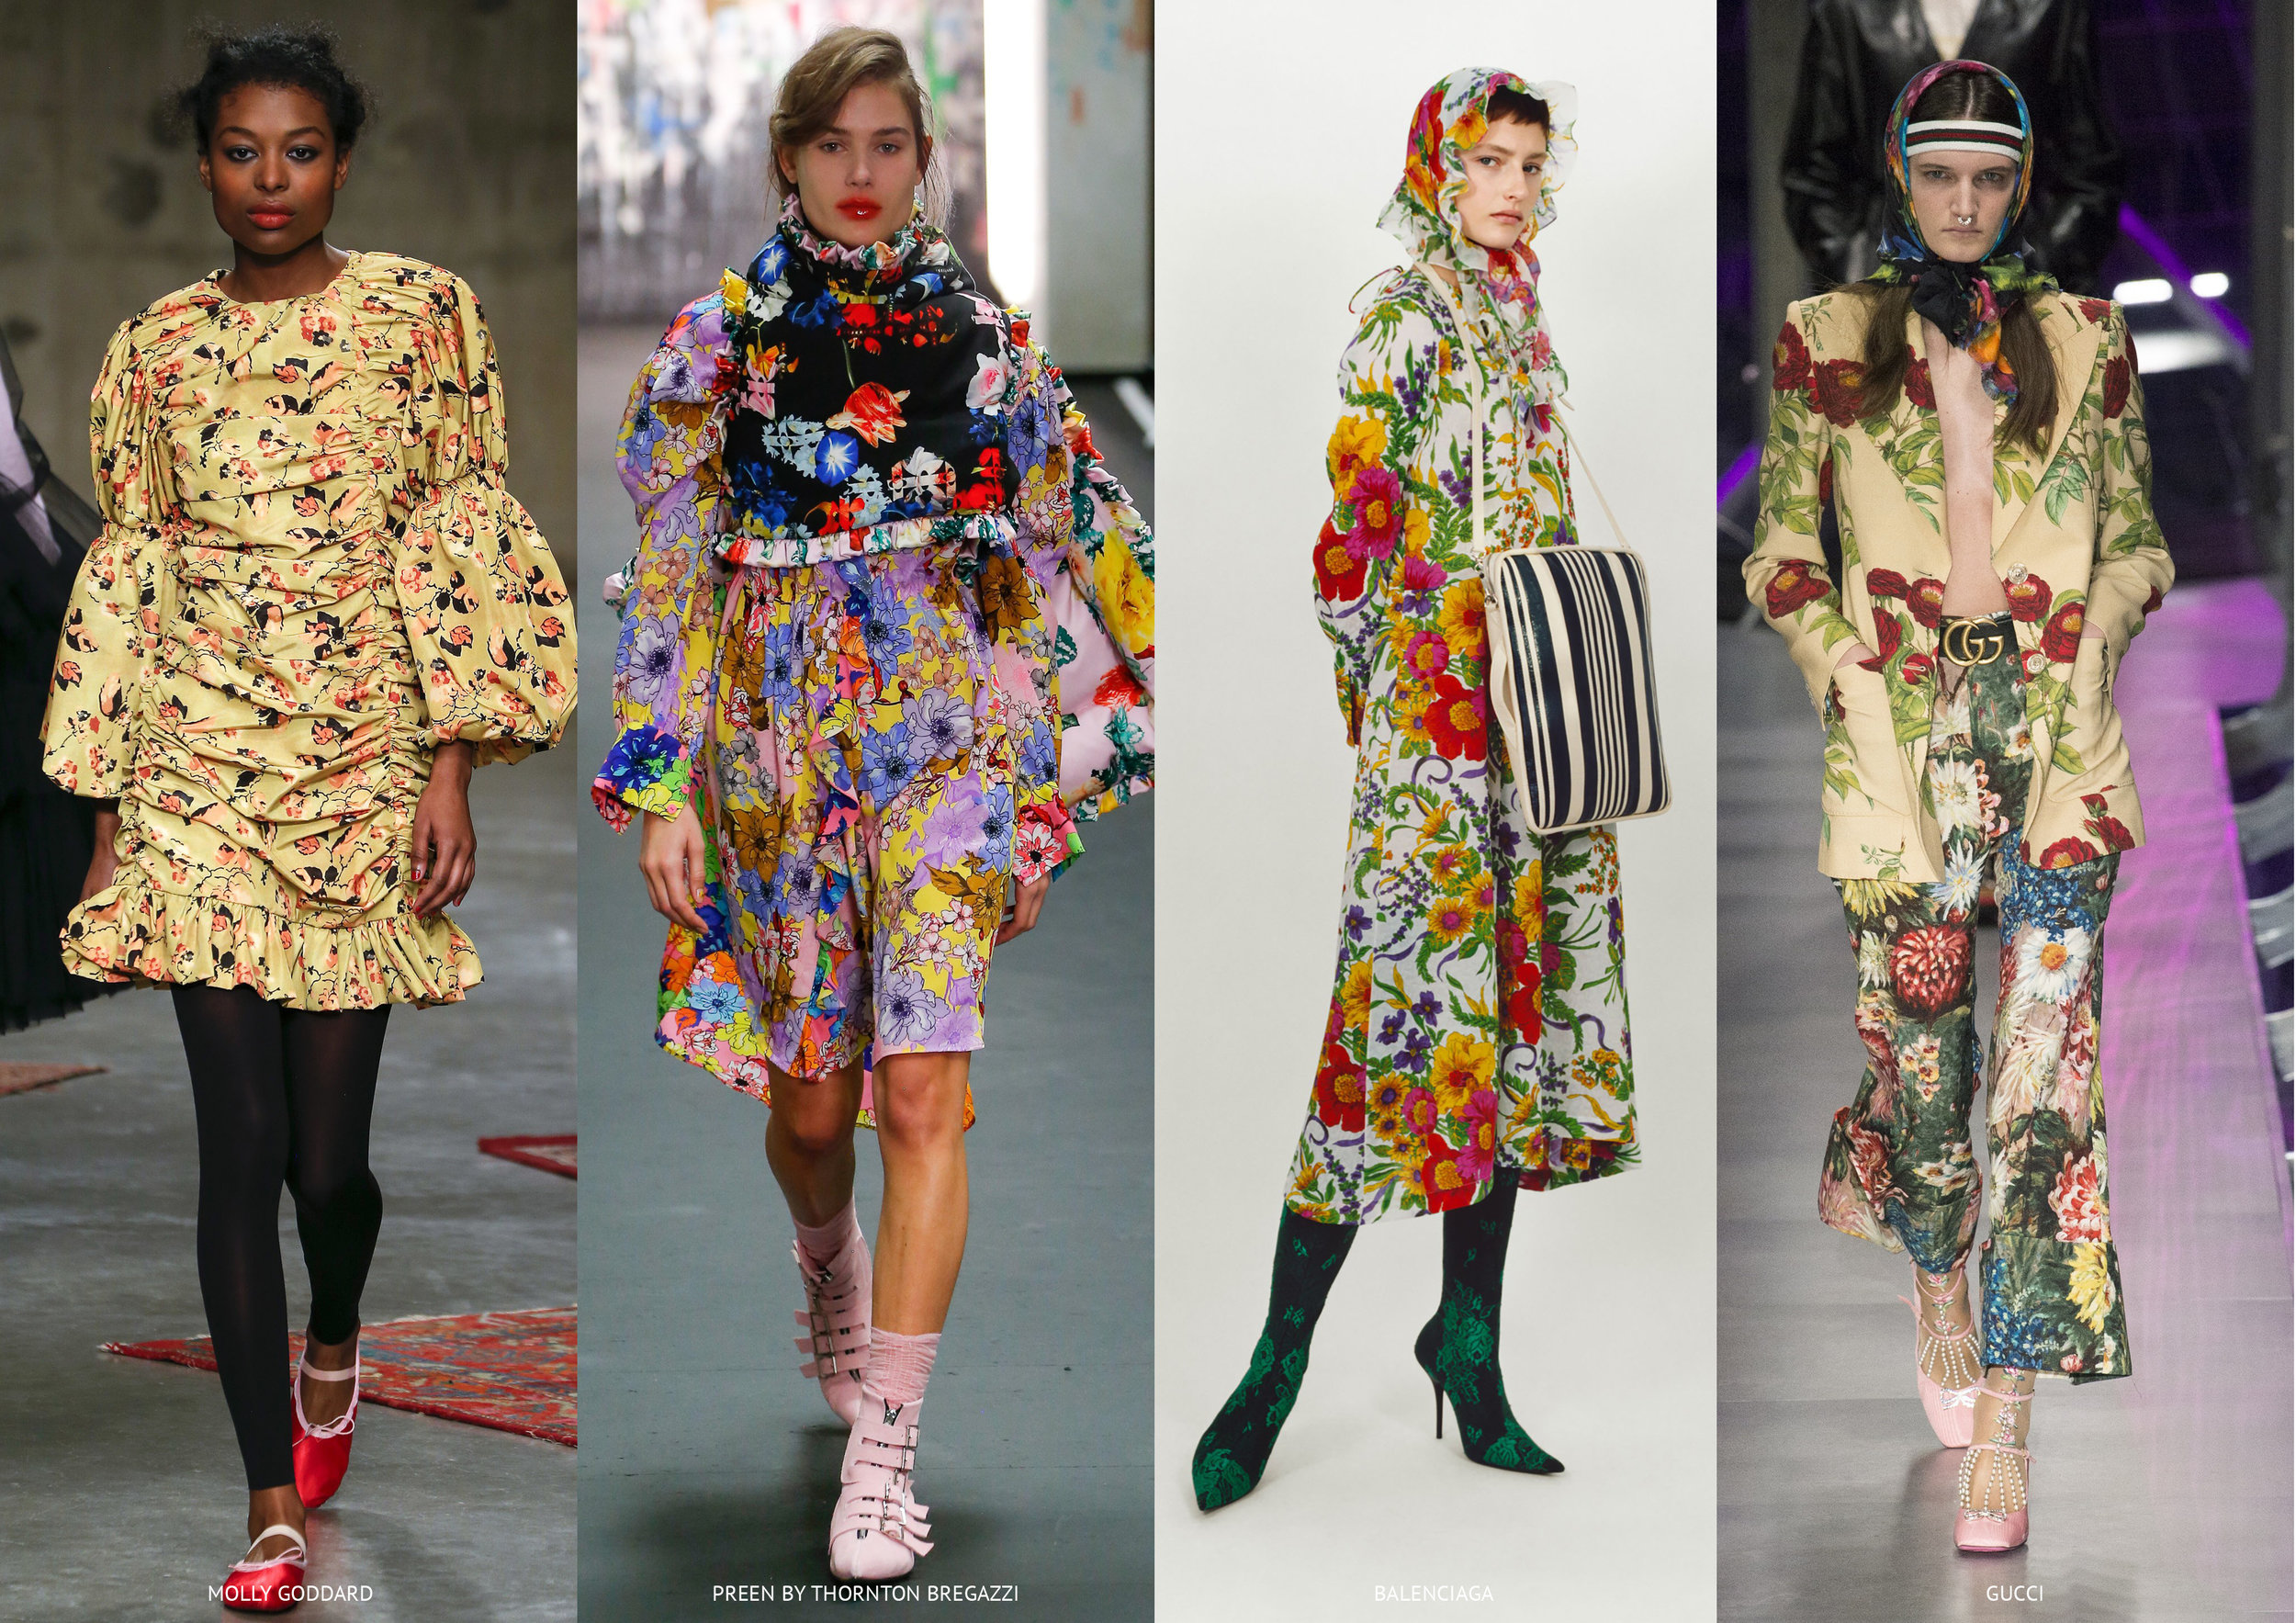 Retro Blooms - Molly Goddard, Preen by Thornton Bregazzi, Balenciaga and Gucci